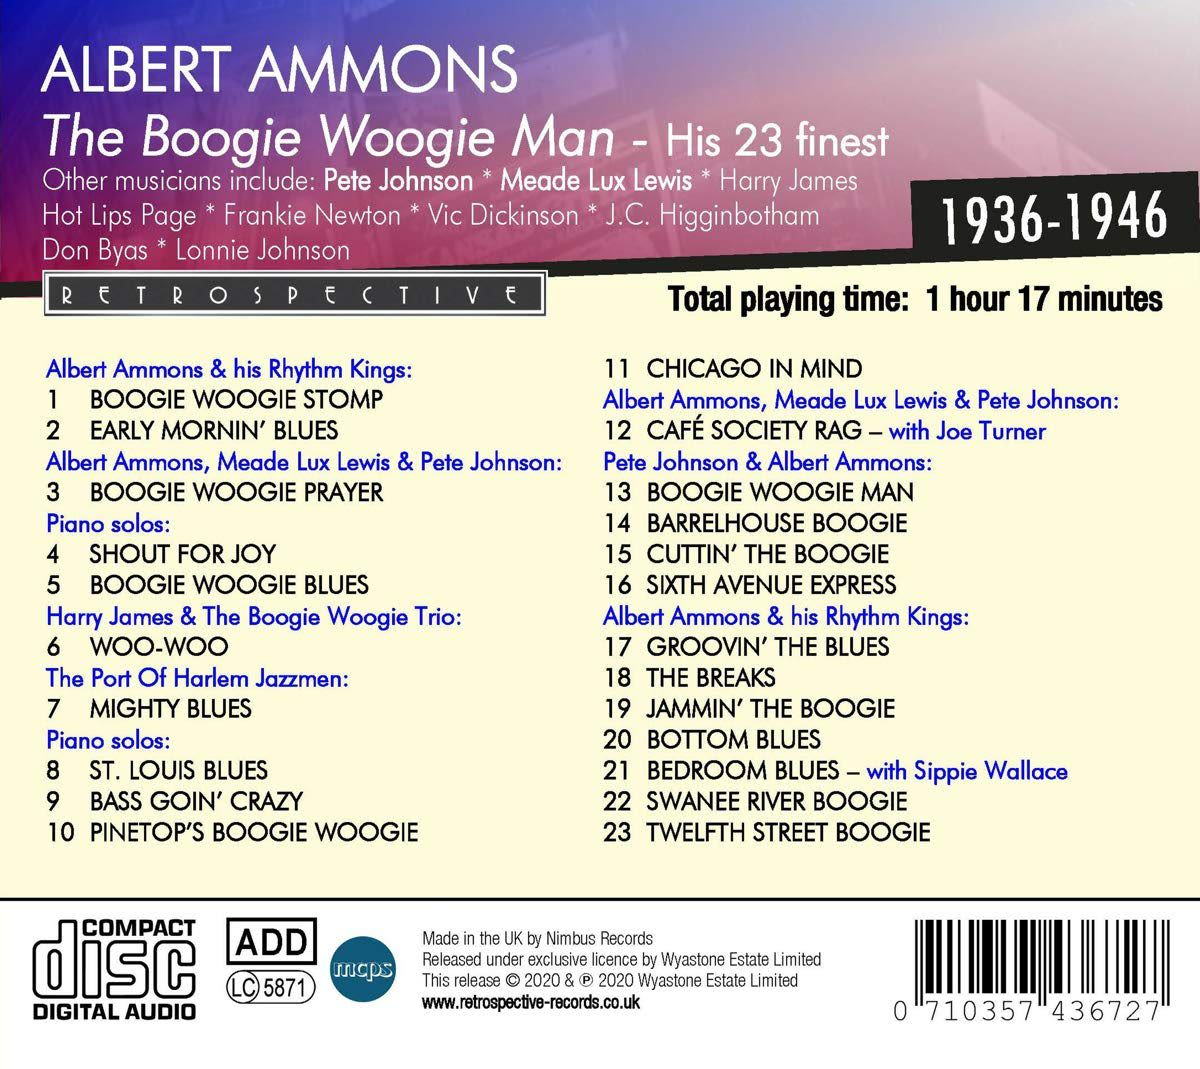 Photo No.2 of Albert Ammons: The Boogie Woogie Man - His 23 Finest 1936-1946